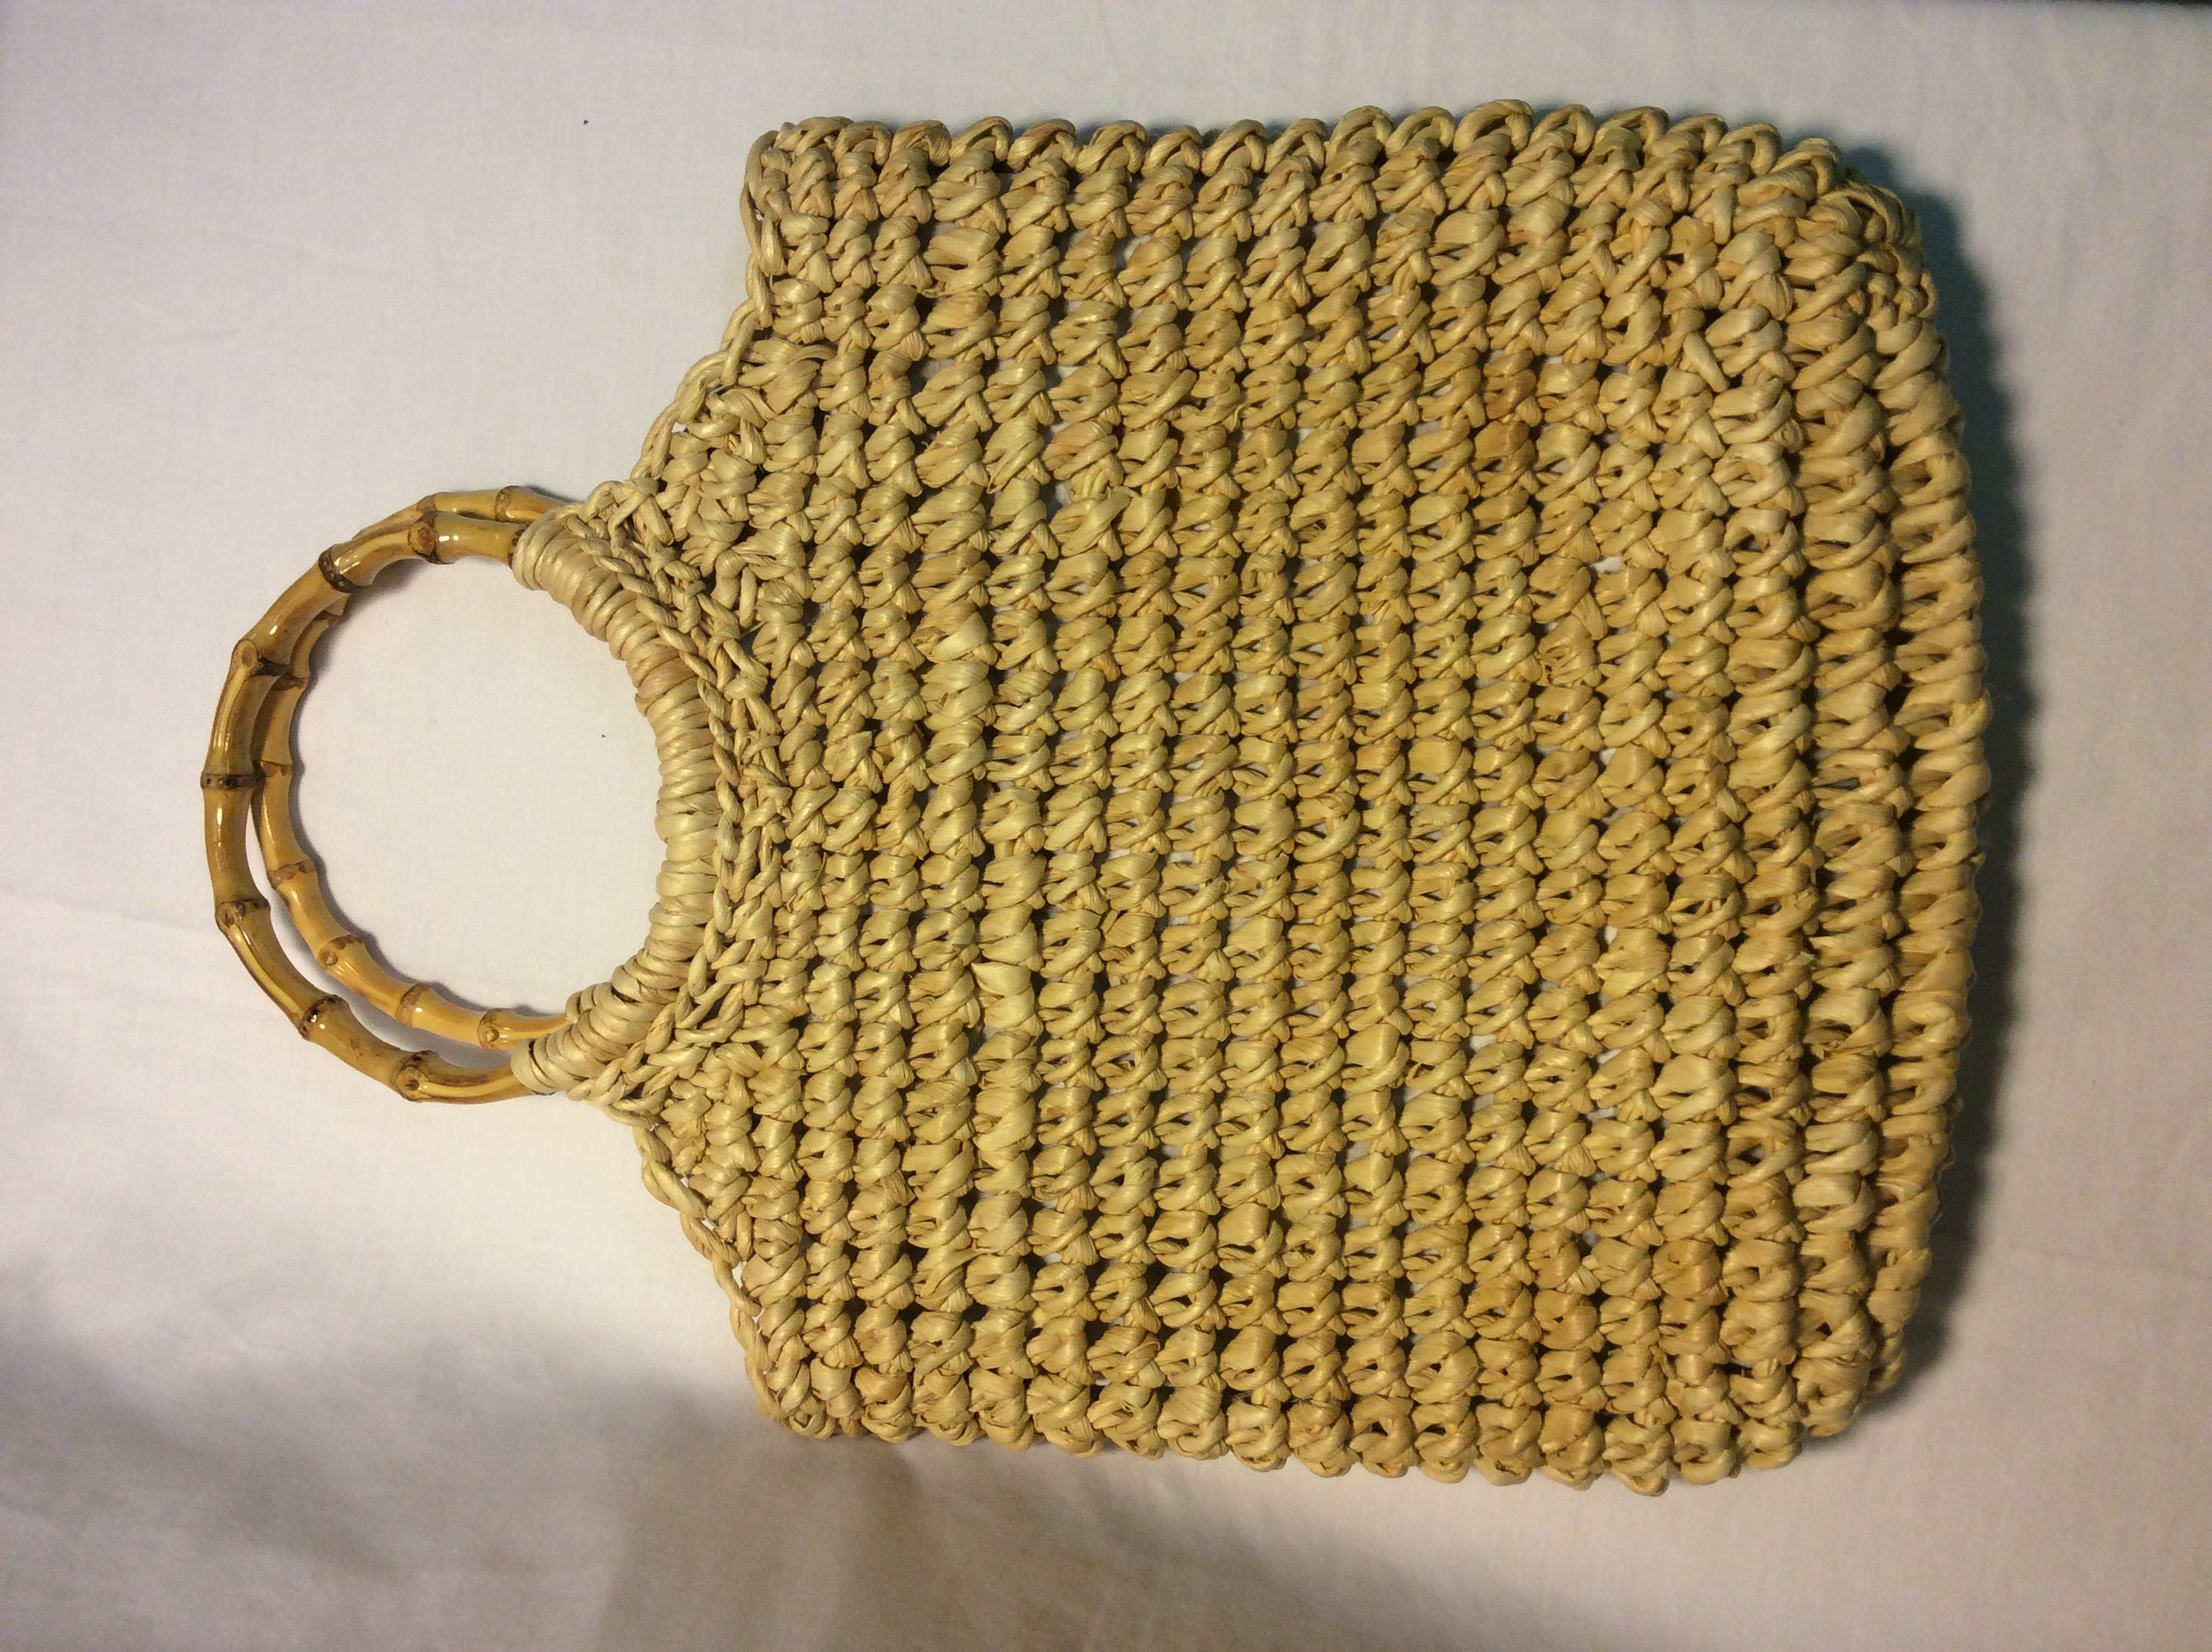 Woven wicker bag with bamboo circle